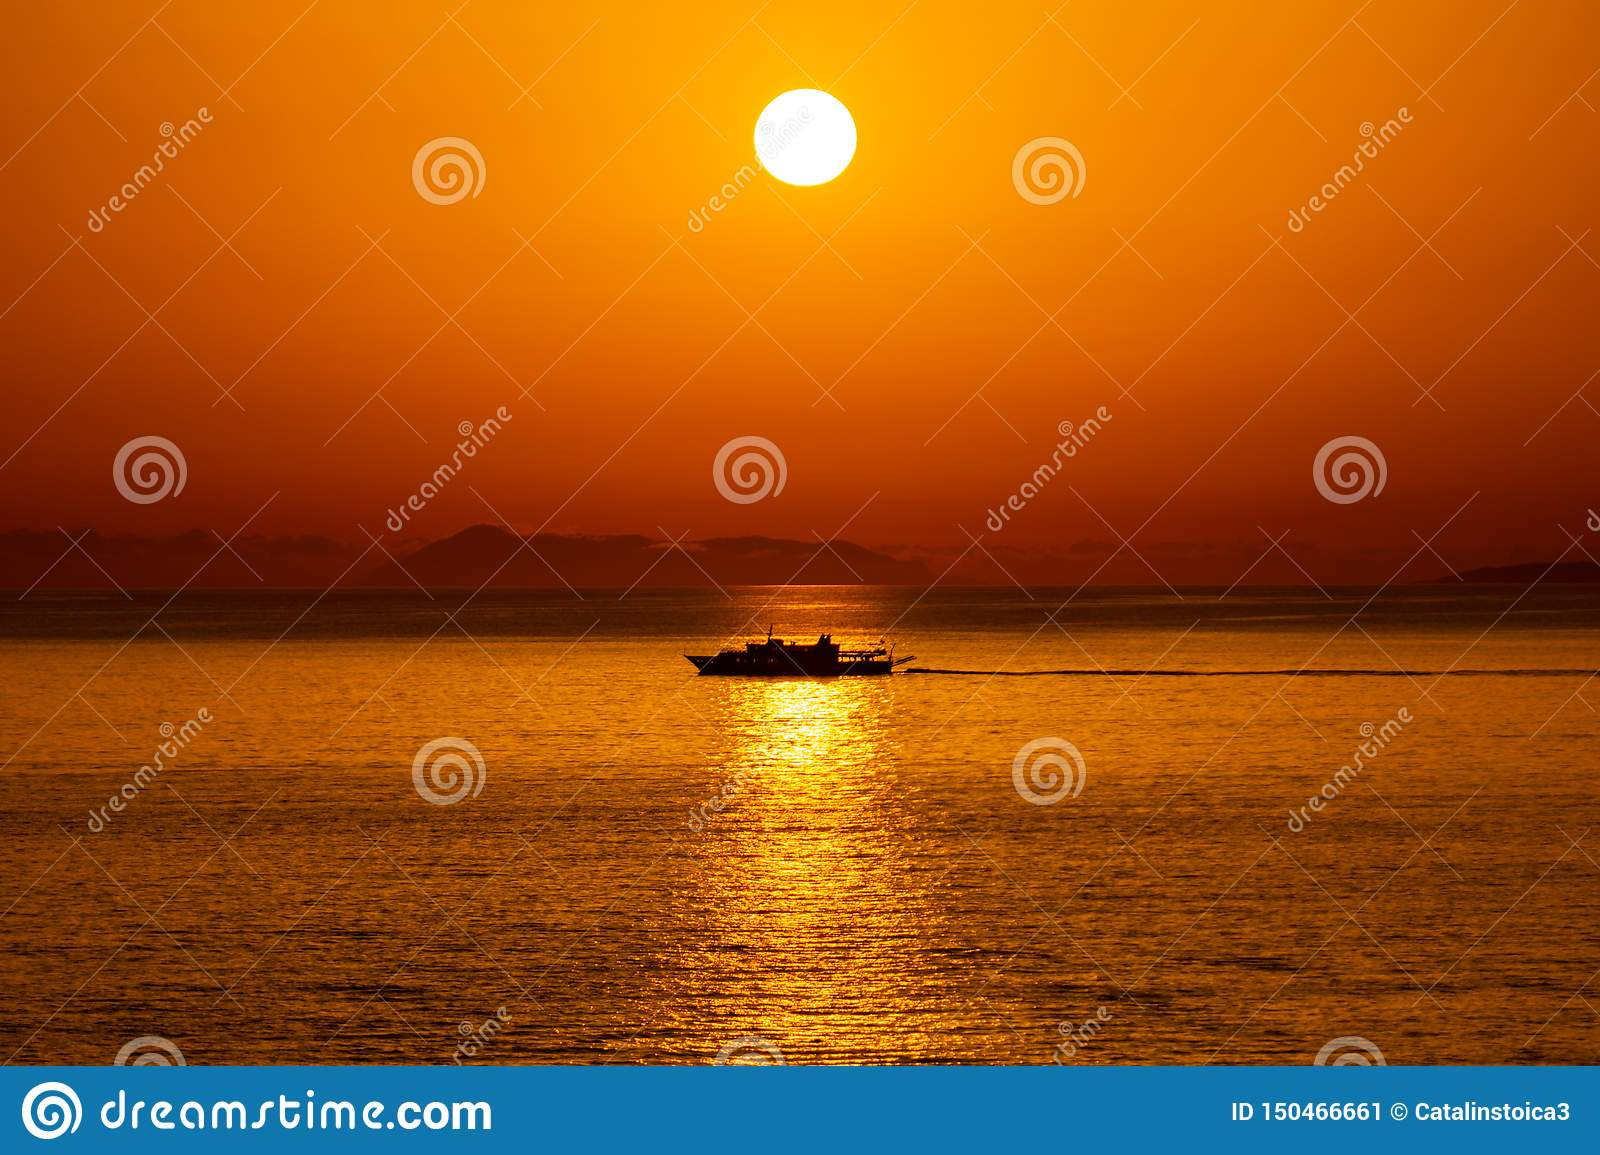 Silhouette of a ship passing in the reflection of the Sun in the Ionian Sea, Sarande, Albania.